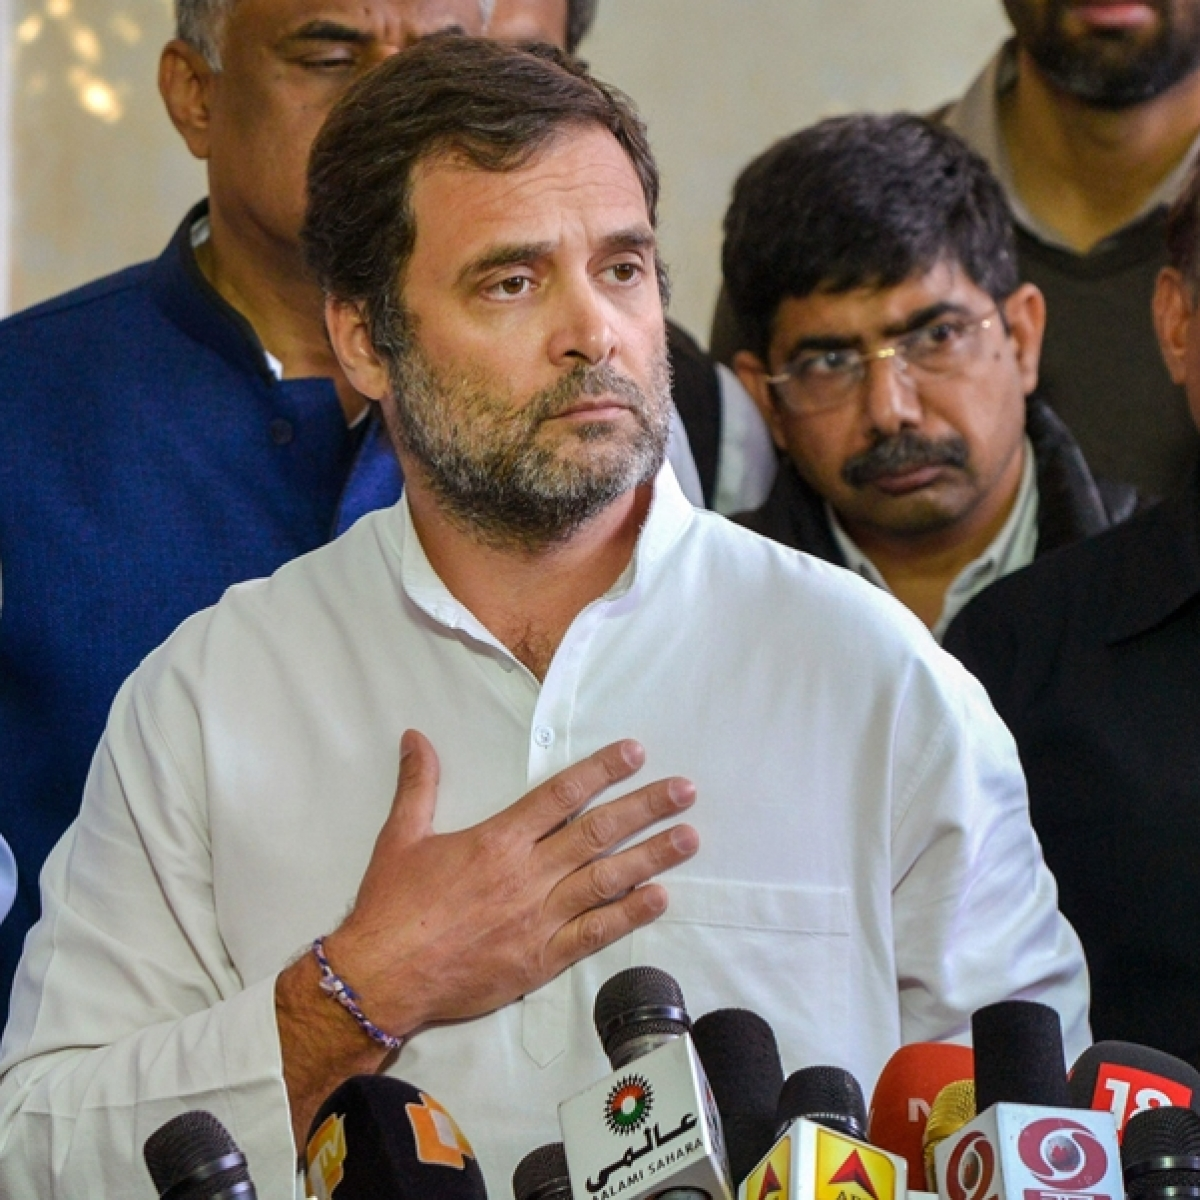 Rahul says Narendra Modi is Surender Modi, Twitter wonders if it's a typo